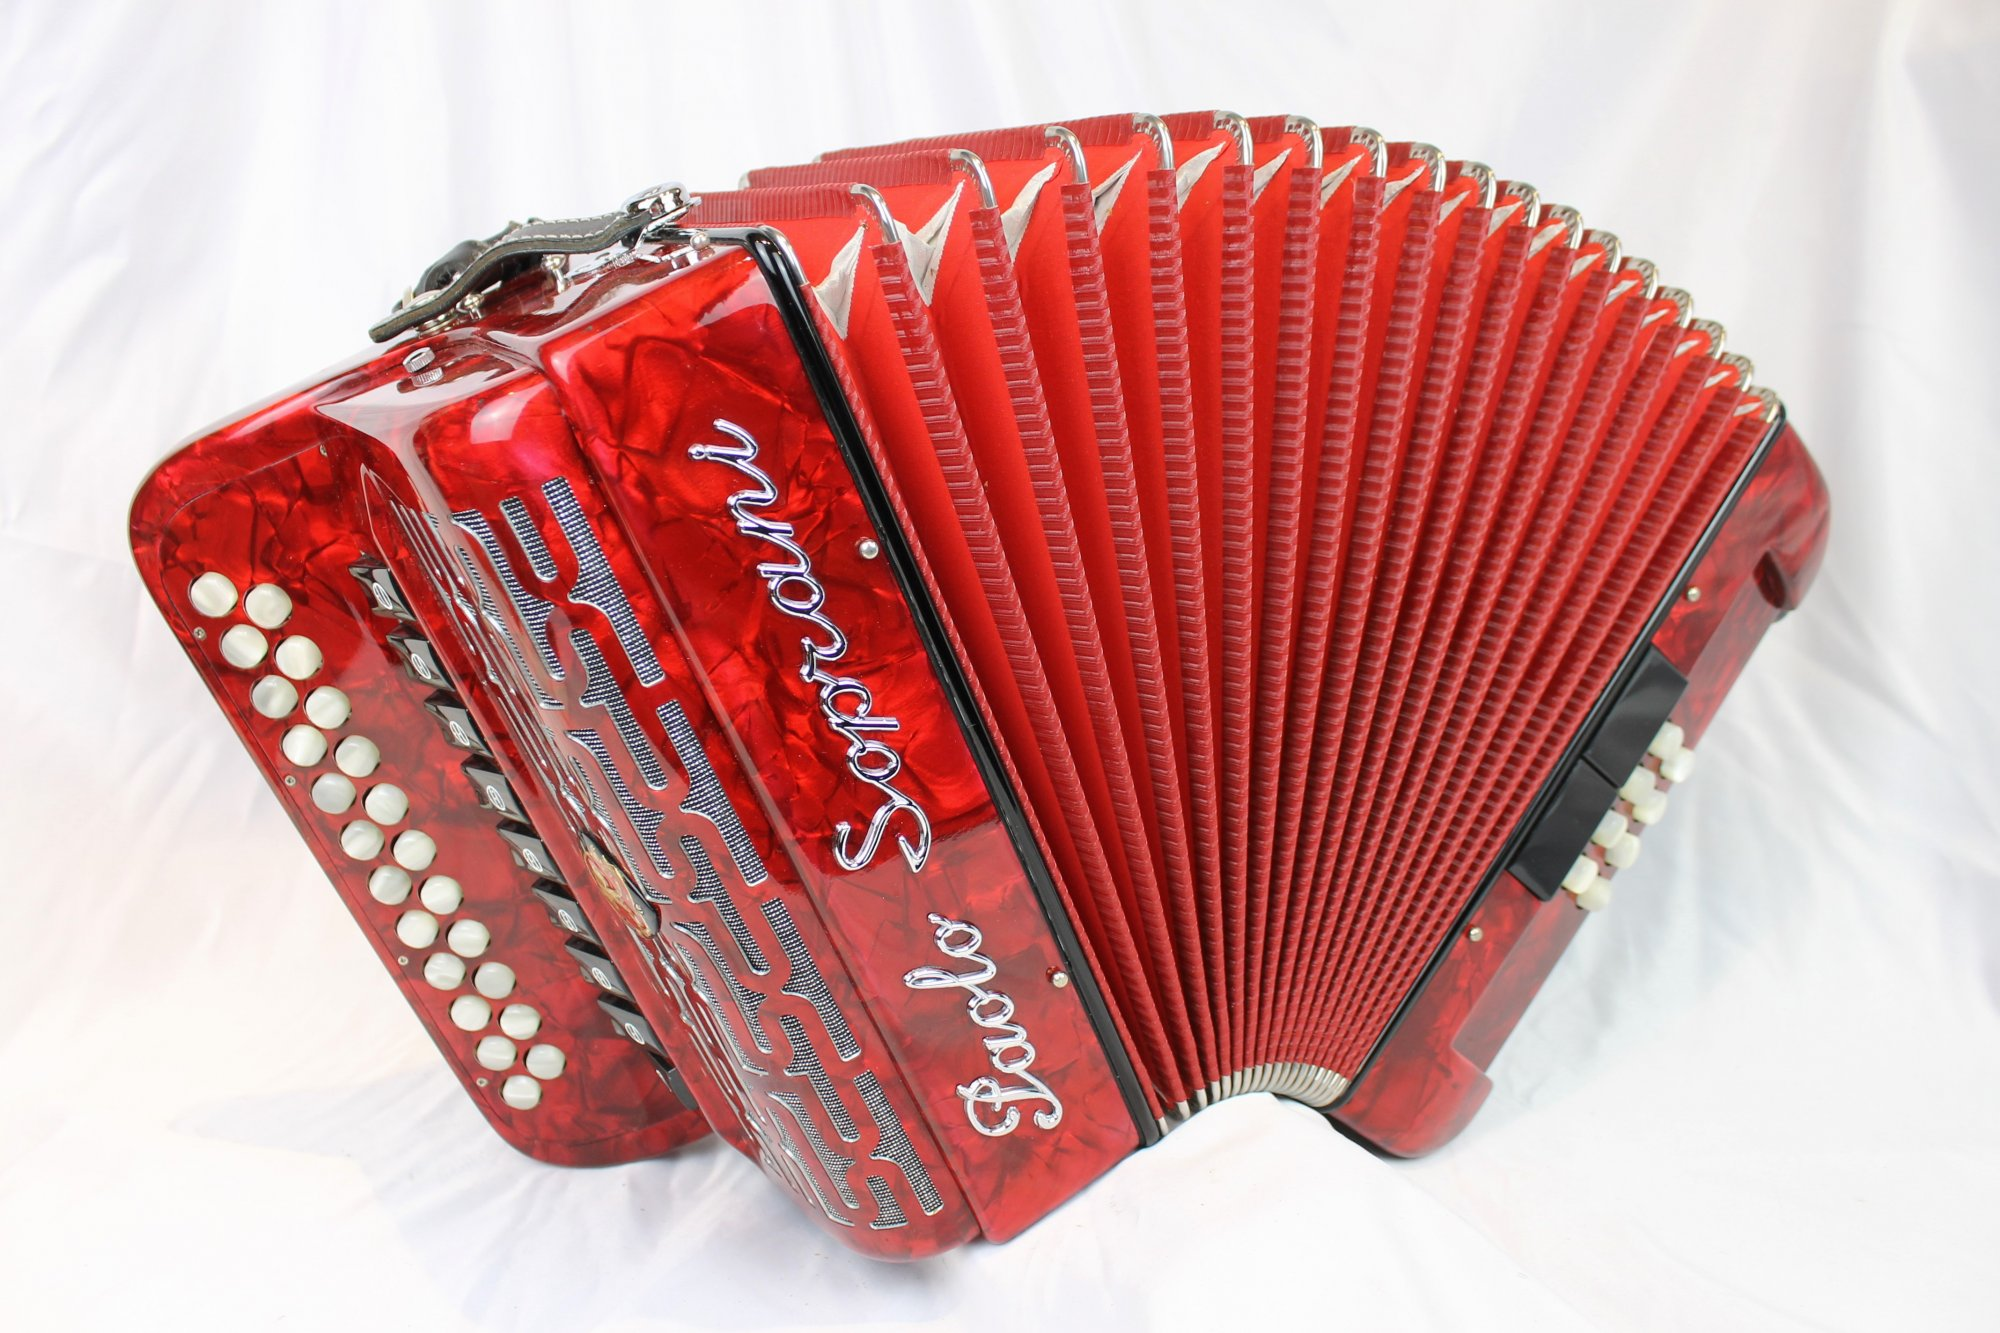 5038 - Red Paolo Soprani Elite III Diatonic Accordion BC LMMM 23 8